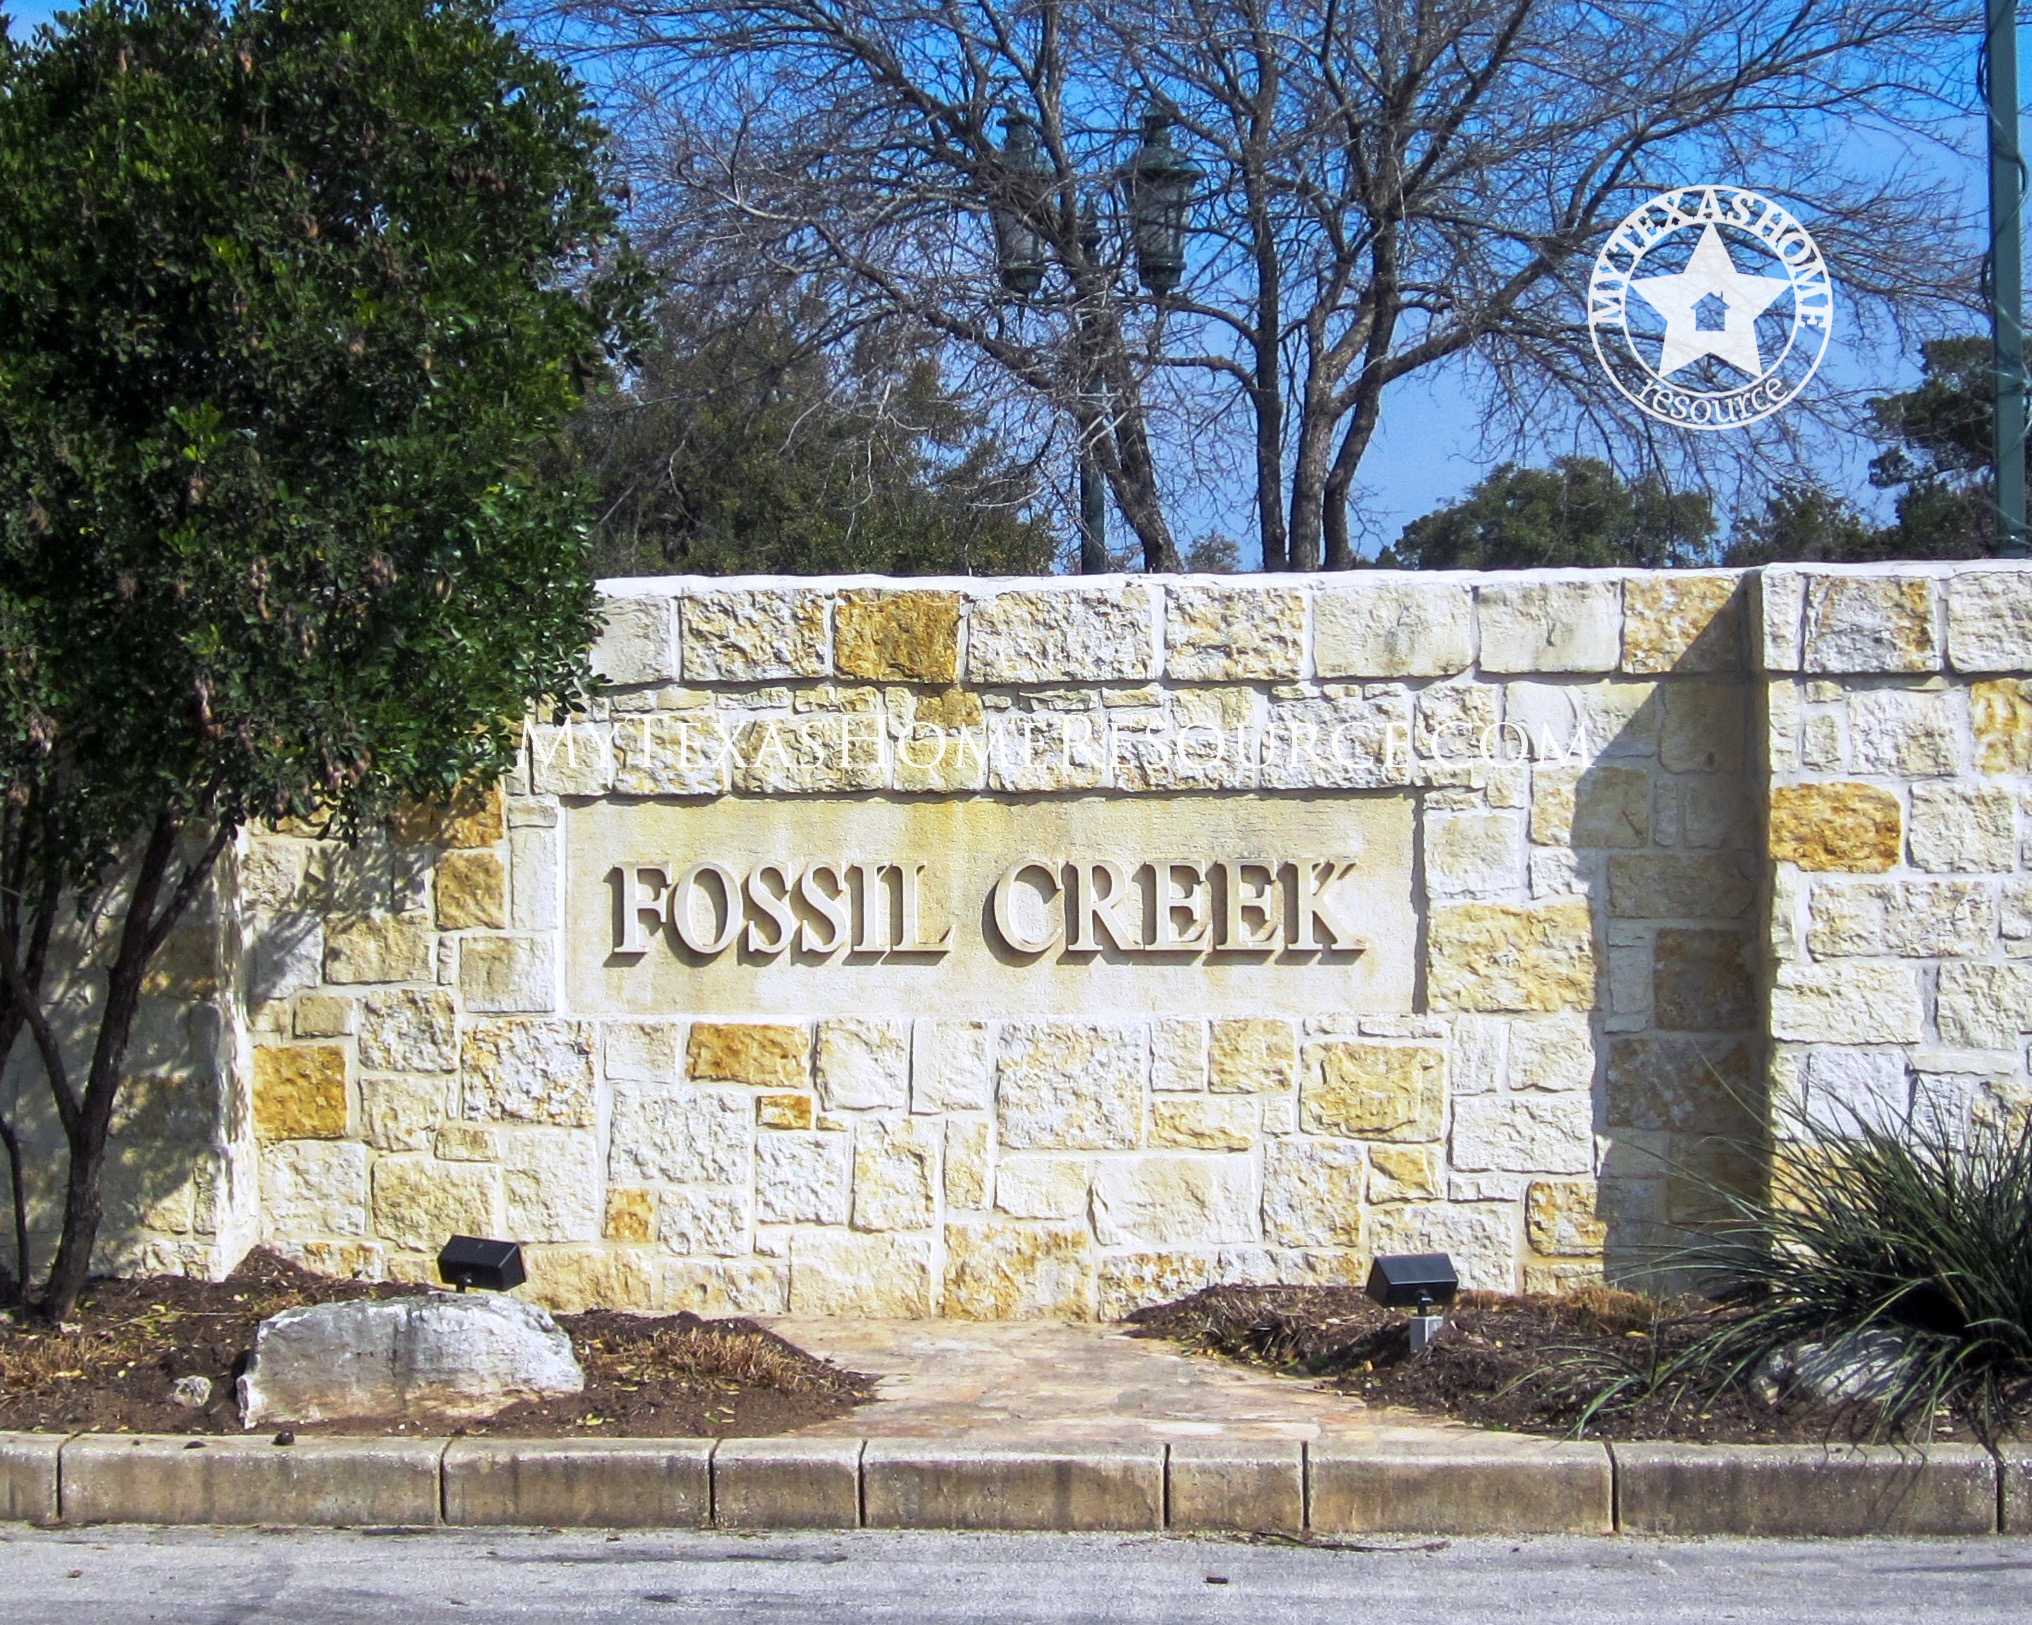 Fossil Creek Community